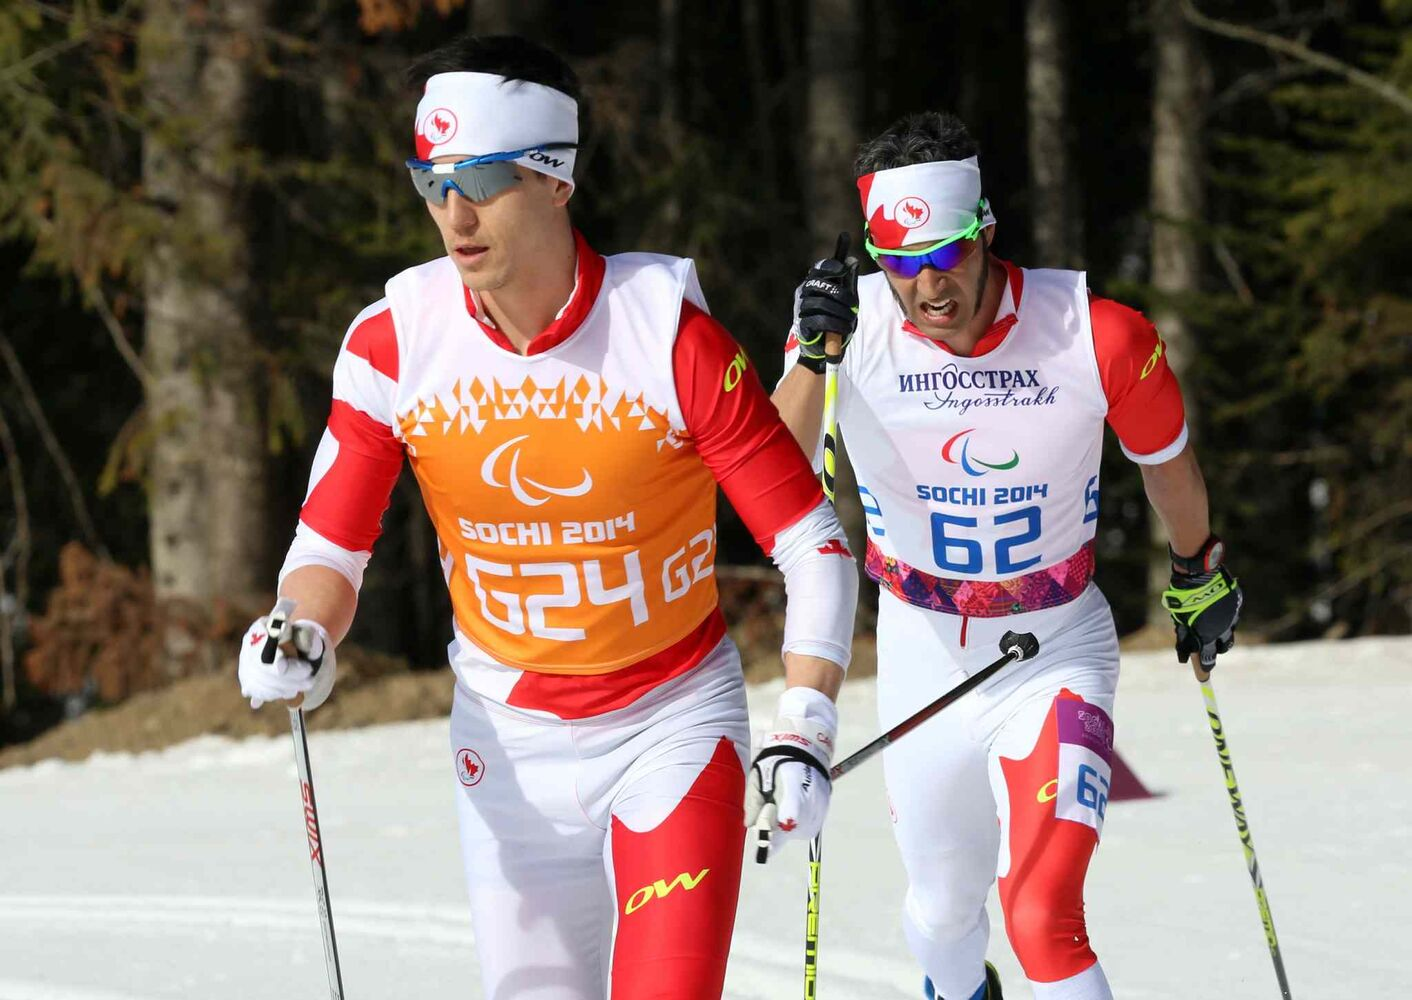 Canadian Brian McKeever (right) and guide Graham Nishikawa compete in the men's visually impaired 20-kilometre race at the Sochi 2014 Paralympic Winter Games in Sochi Russia on Monday March 10, 2014.  (Scott Grant / Canadian Paralympic Committee)